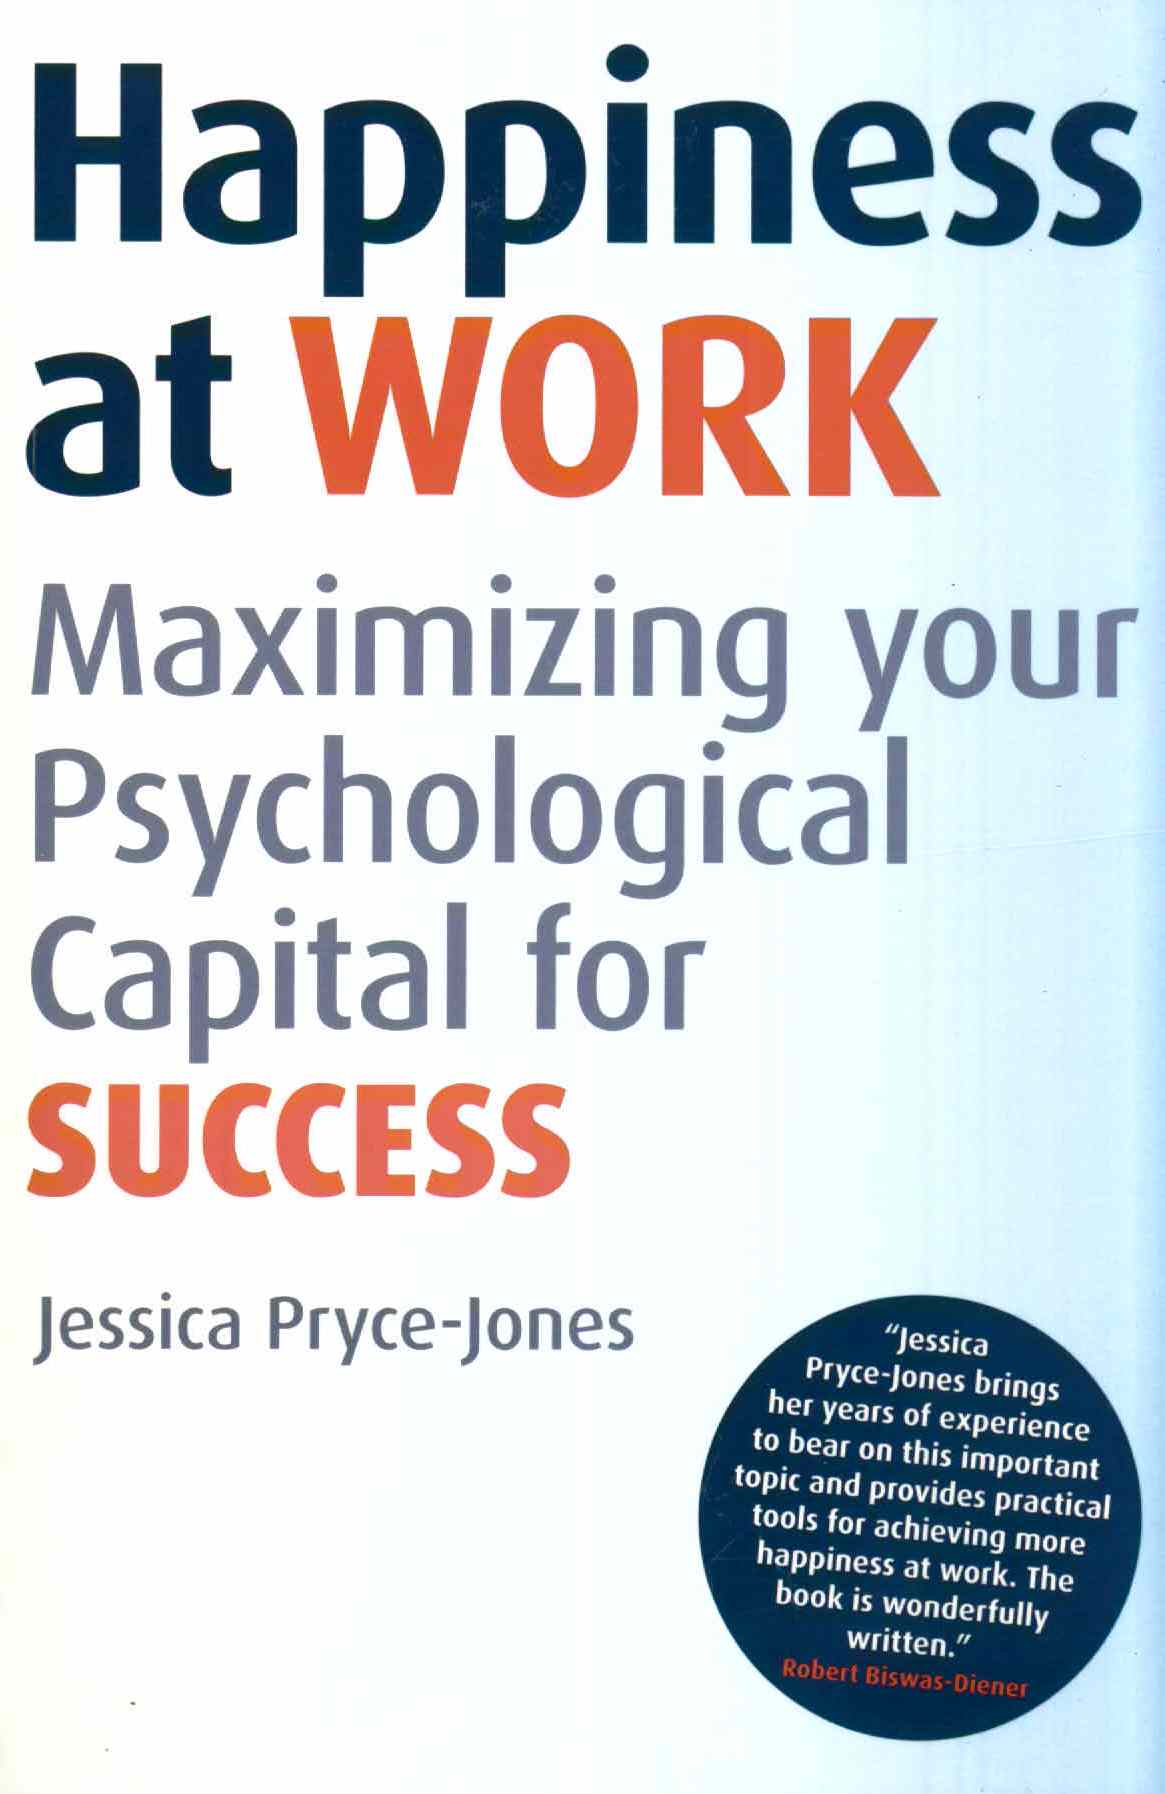 new book summary available for happiness at work business book the